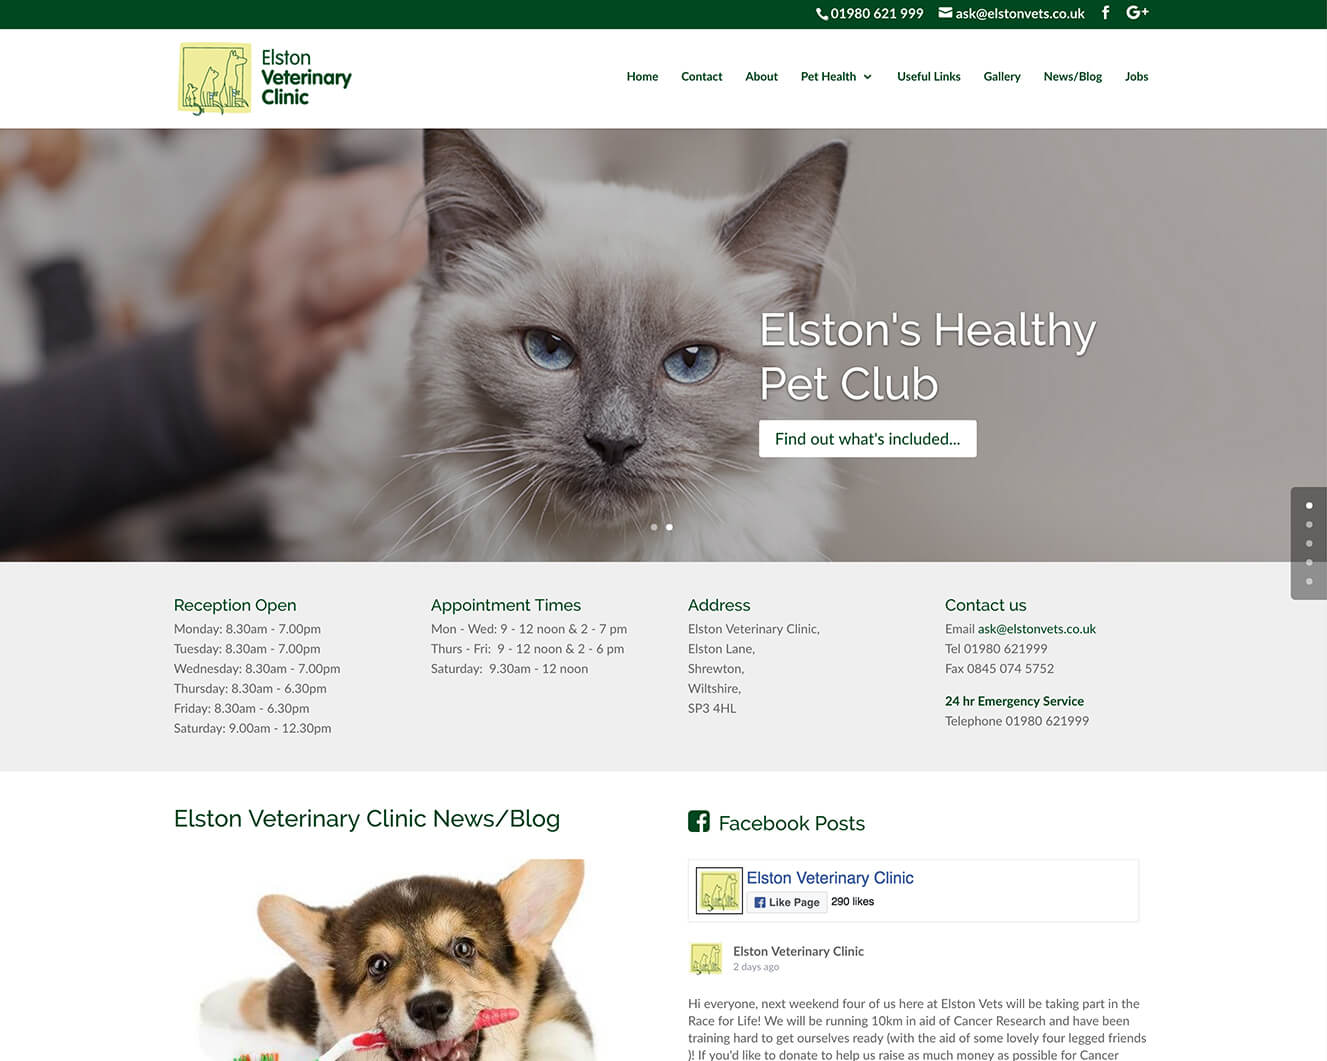 Veterinary website design for Elston Vets: Home Page